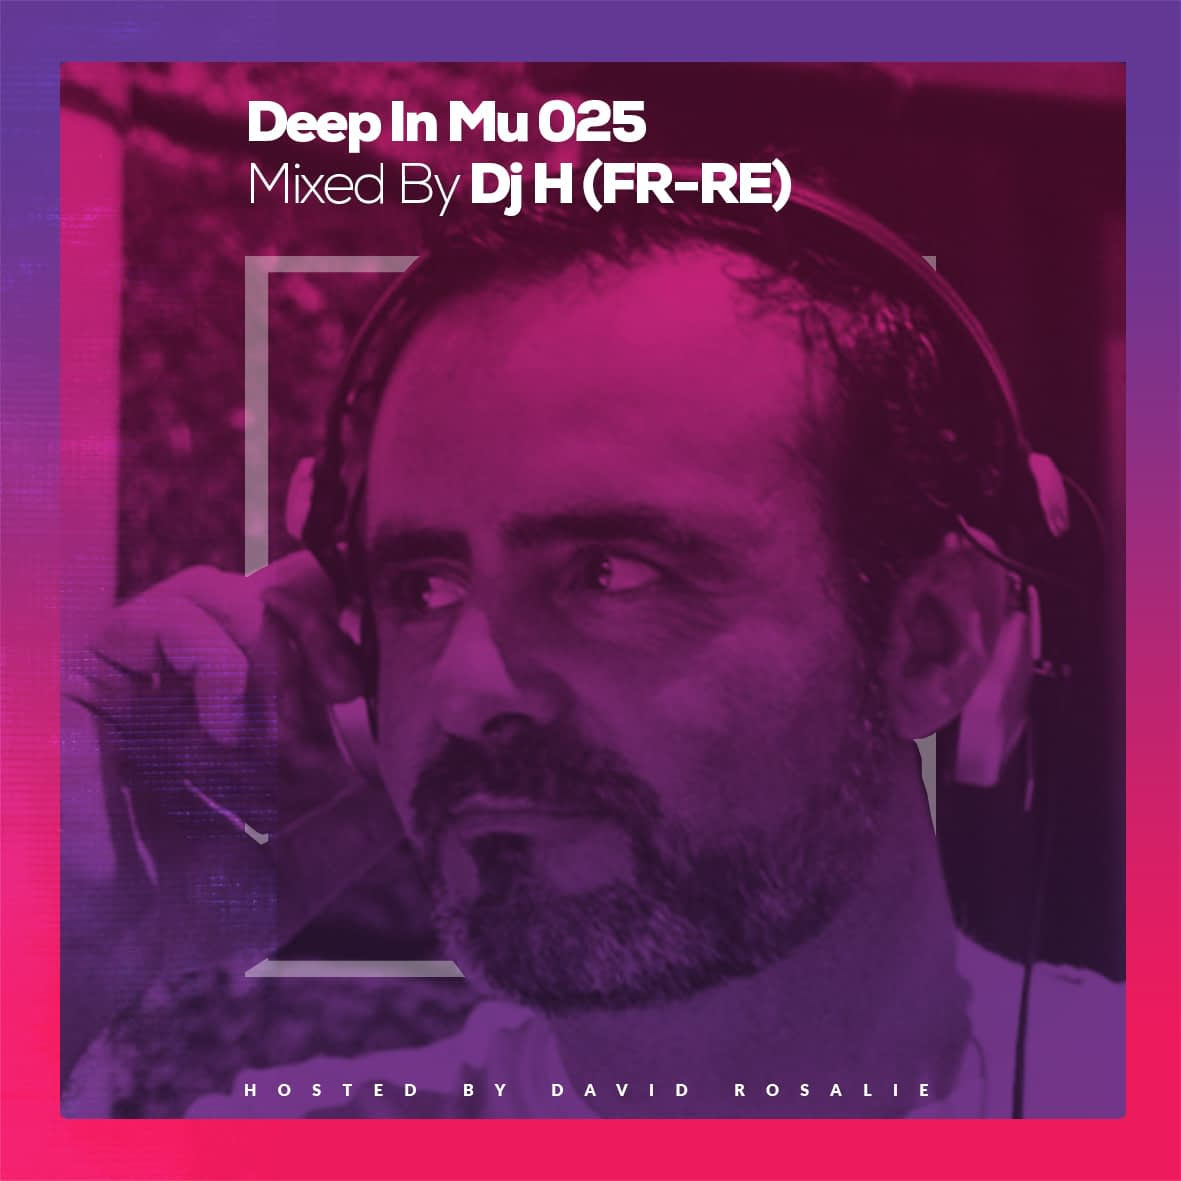 Deep In Mu 025 Mixed By DJ H (FR-RE)